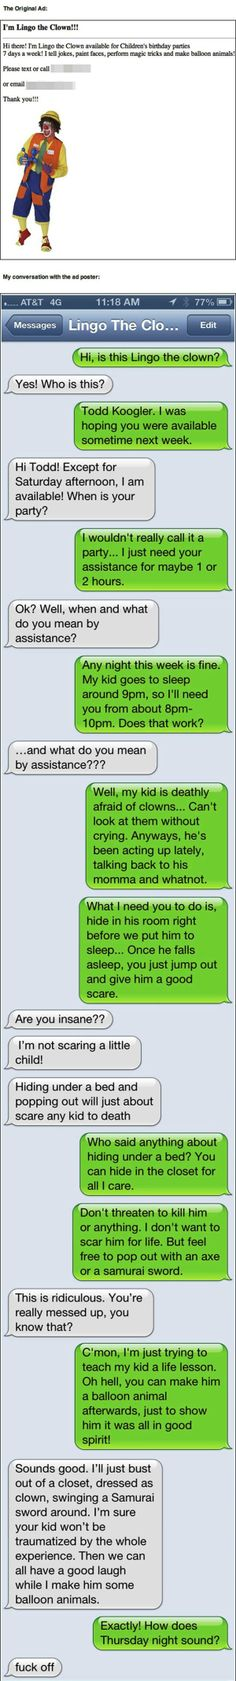 35 Glorious Text Pranks For April Fool's… And The Rest Of The Year --  Read more at http://runt-of-the-web.com/glorious-text-pranks#ubffxfhG6gMZlgZC.99